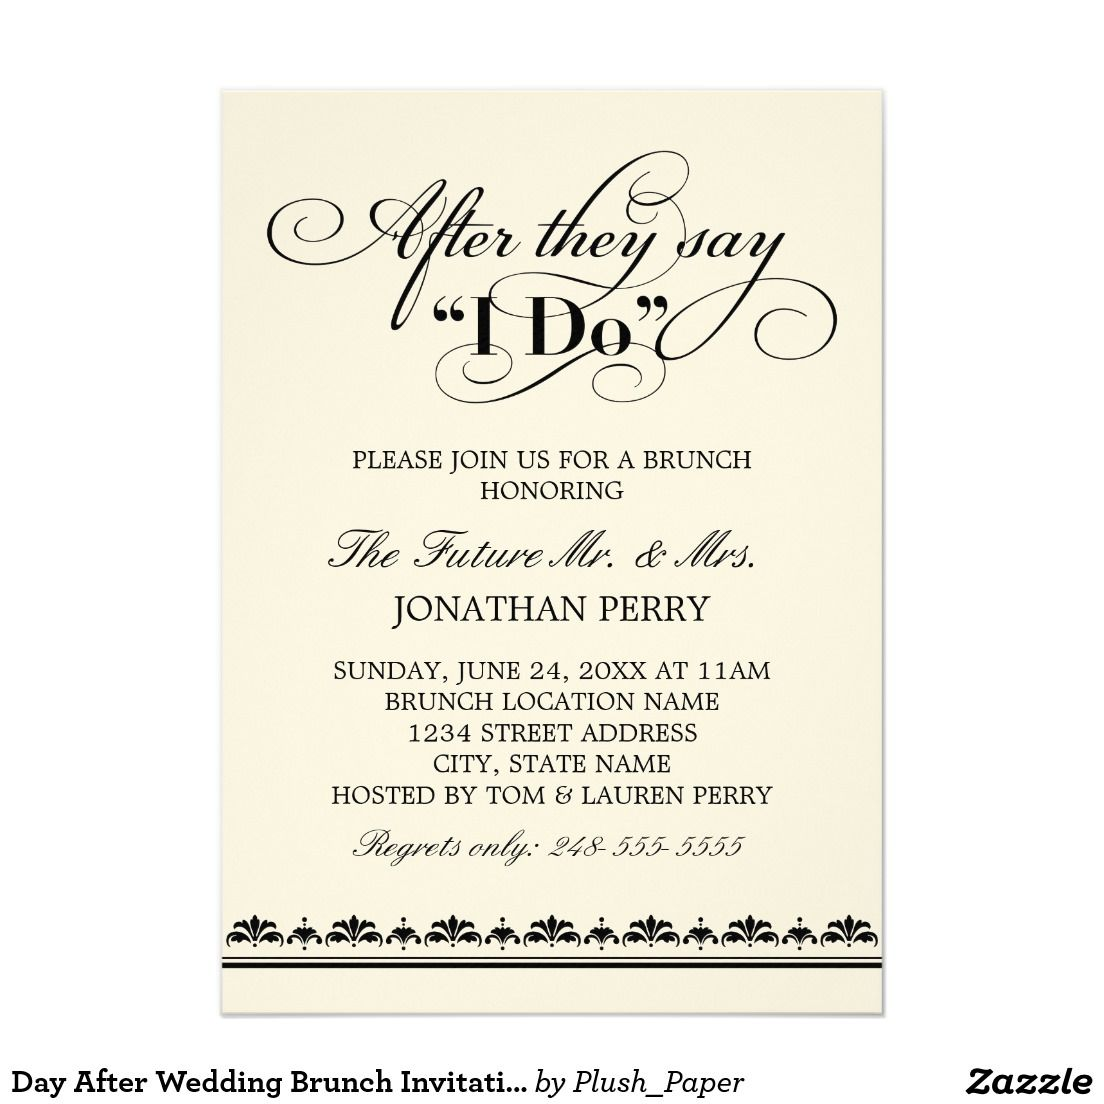 Day After Wedding Brunch Invitation | Wedding Vows | Brunch ...